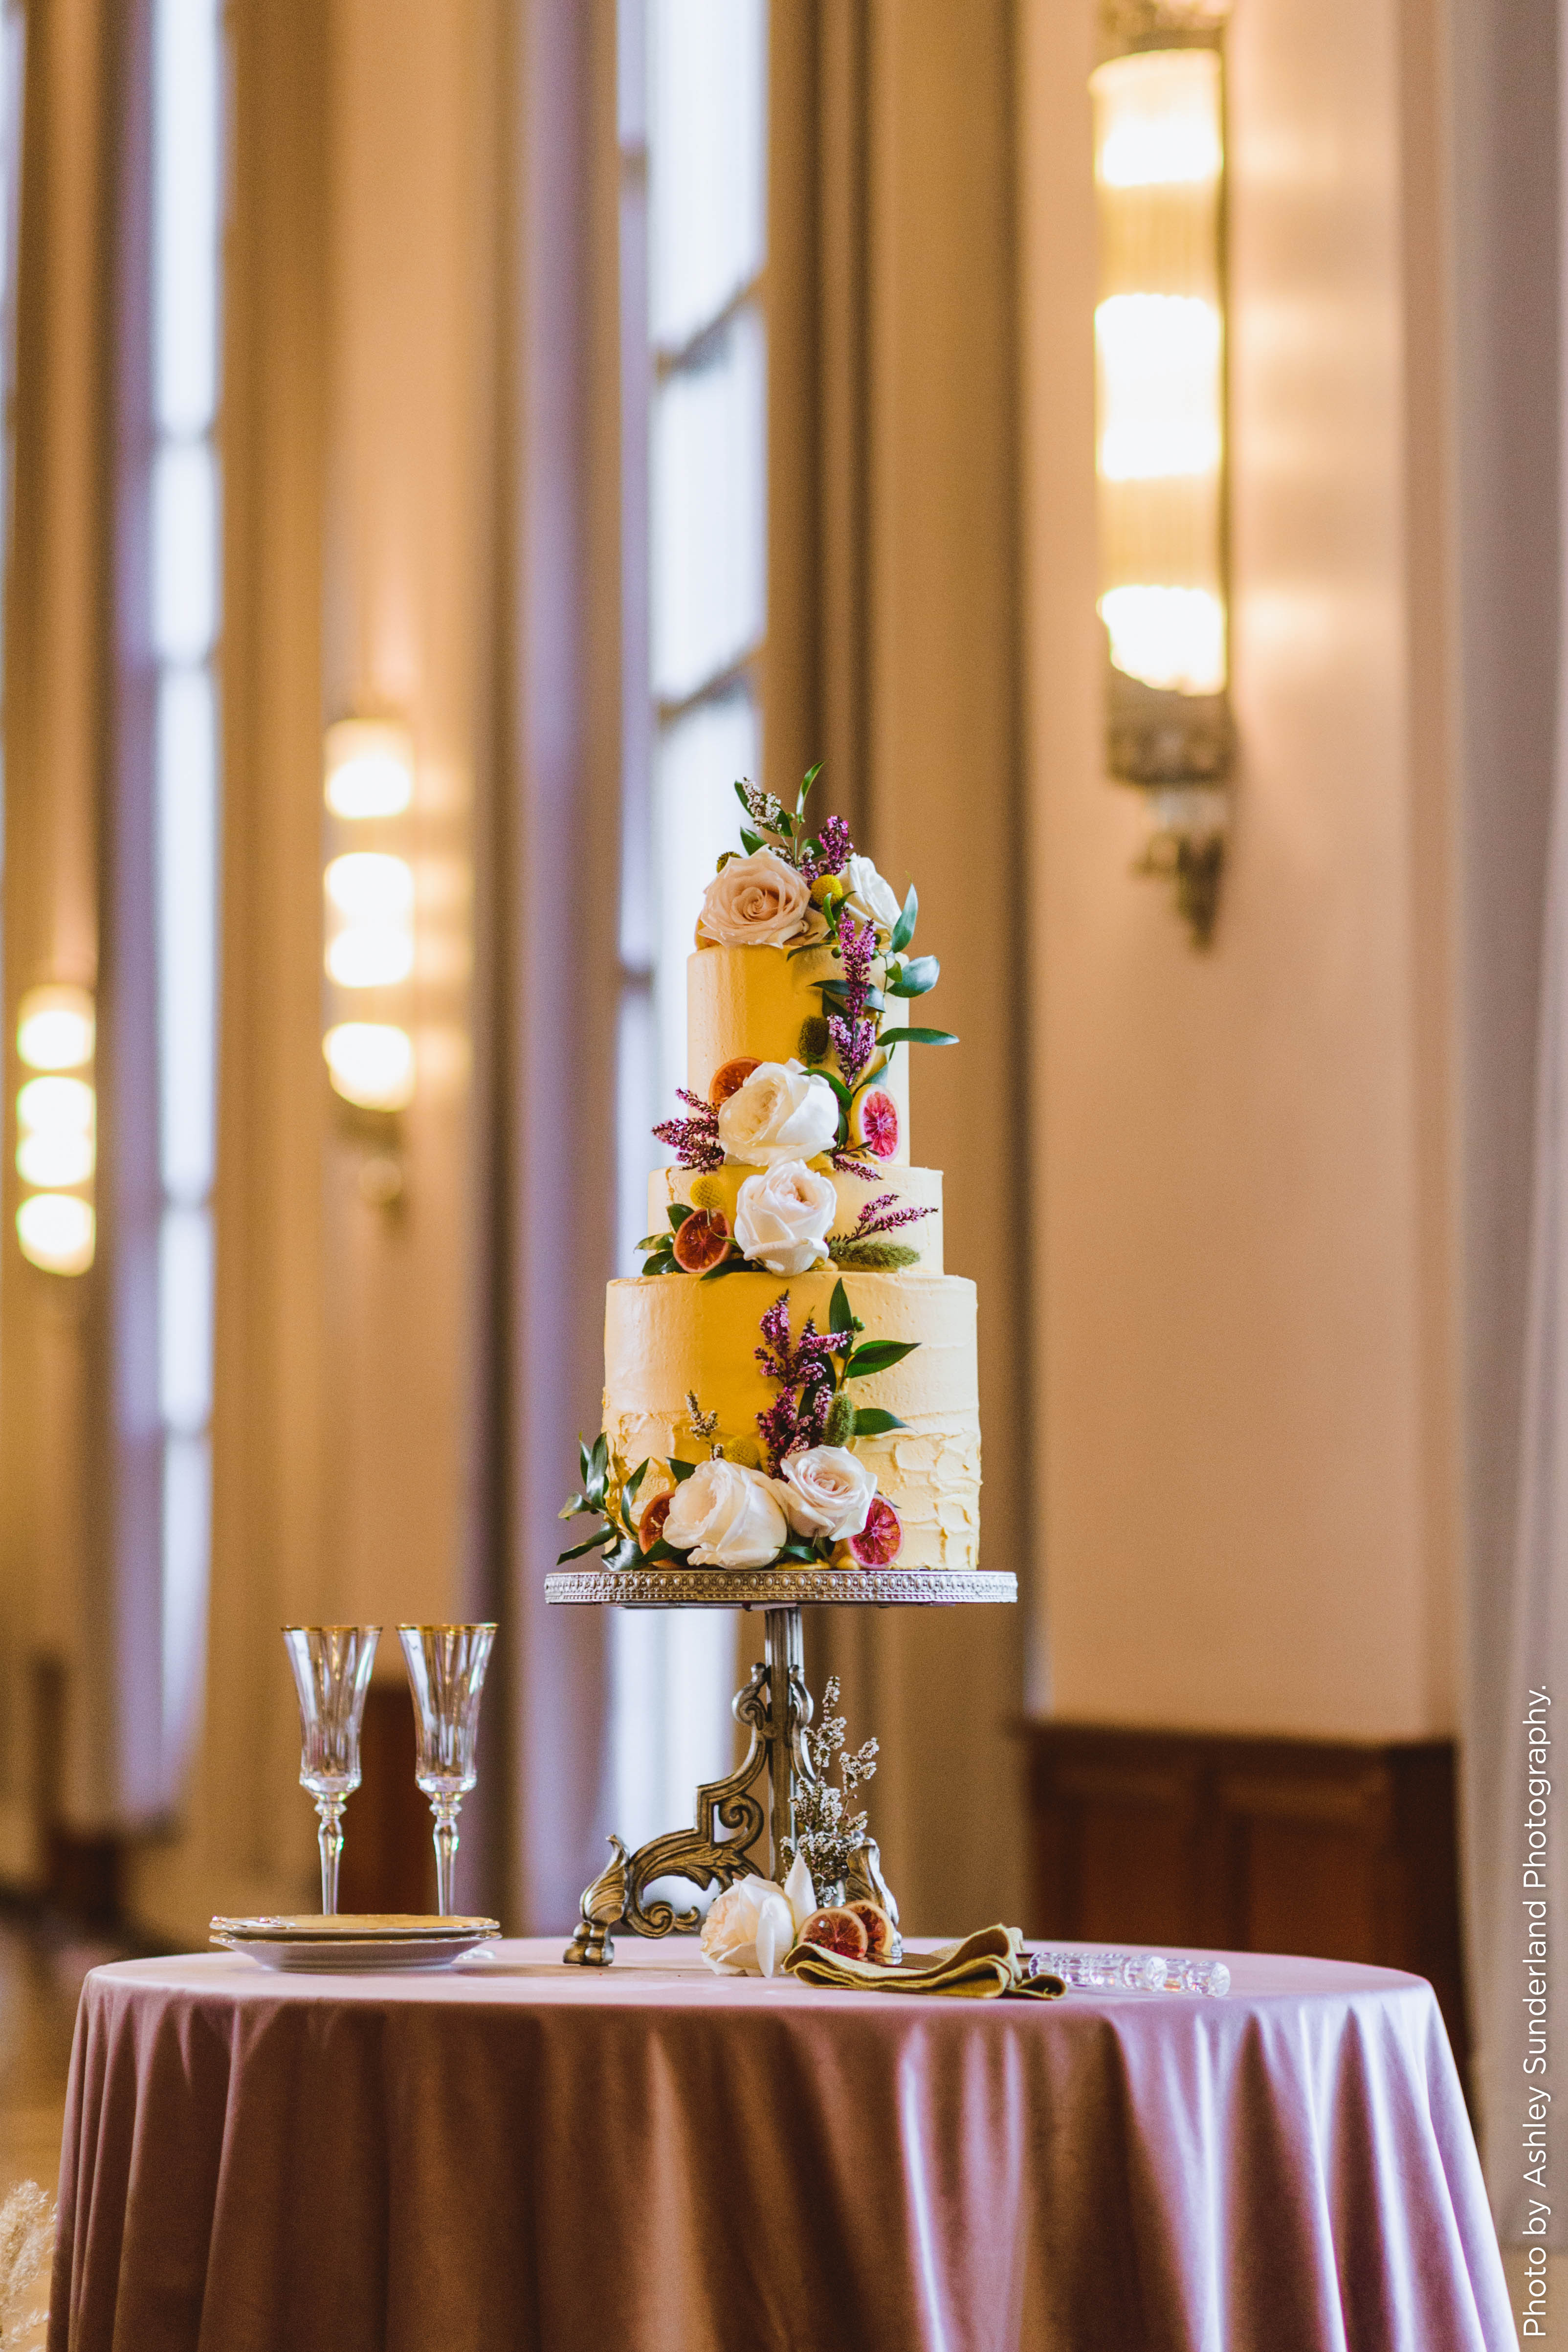 Three tiered cake on a table